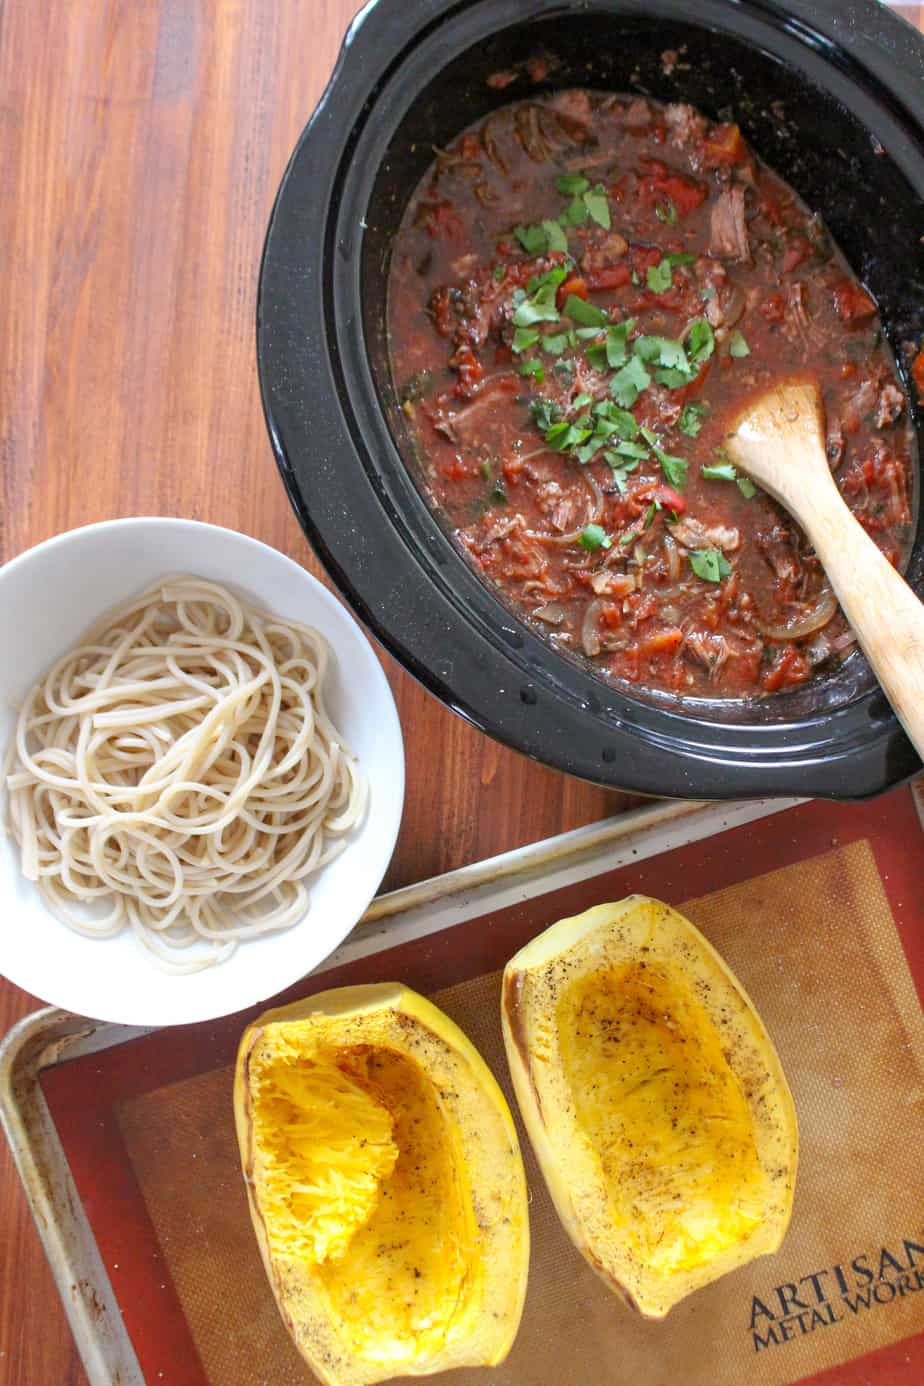 Slow Cooker Beef Ragu with Brown Rice Noodles or Spaghetti Squash | Frugal Nutrition